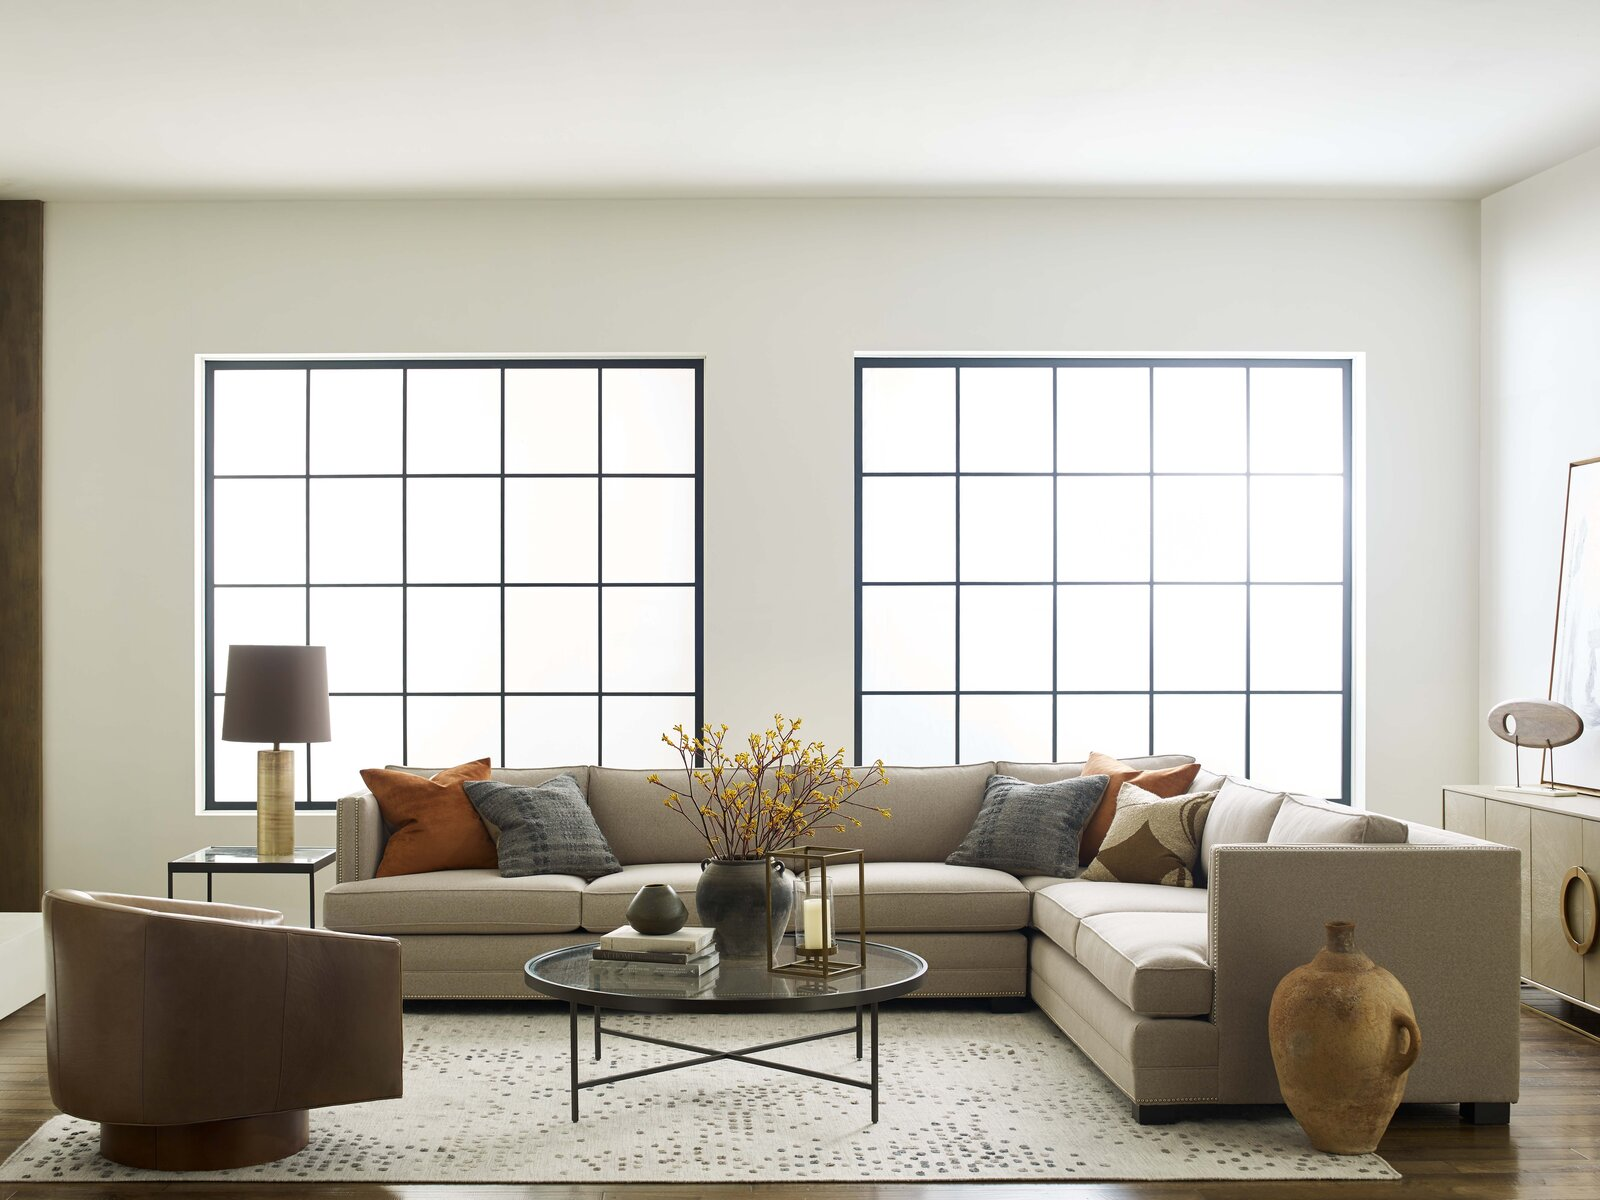 Photo 1 of 1 in The Mitchell Gold + Bob Williams Upholstery Sale Is Here to Amp Up Comfort at Home